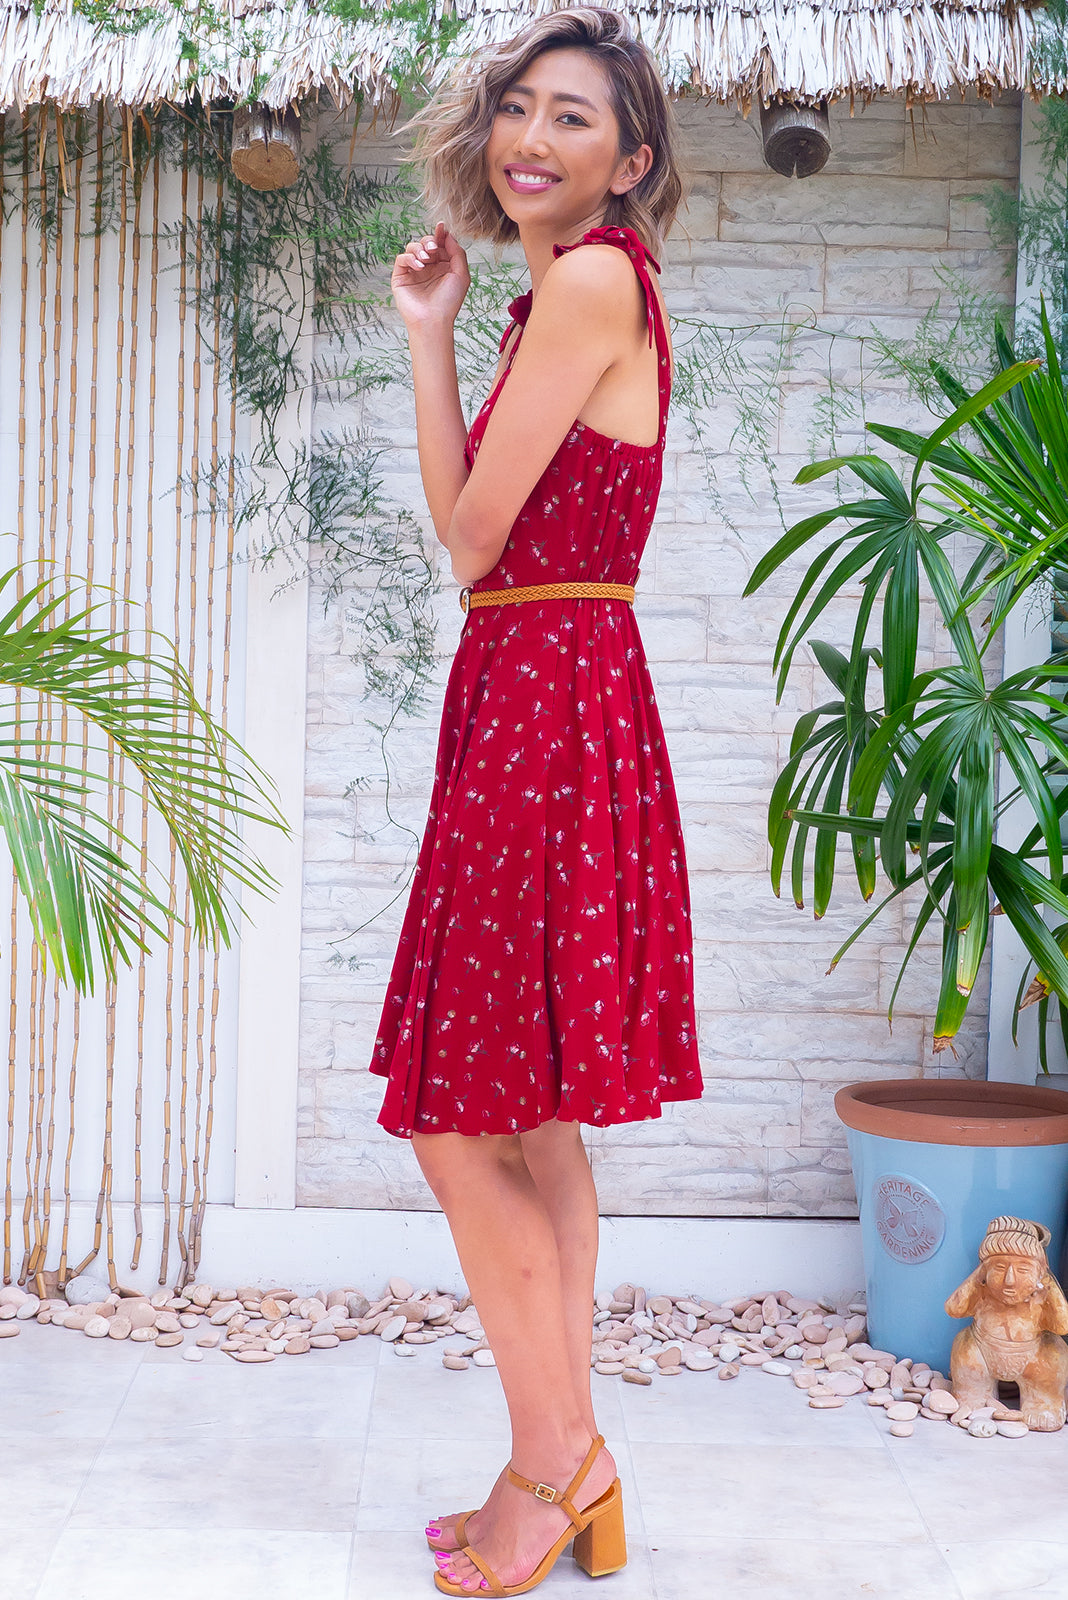 The Ruby Tuesday Real Red Dress is a retro mini dress featuring straight neckline, tie up shoulder straps, functional button front, side pockets, elasticated waist back, woven belt included, full-circle hemline and 100% viscose in deep red base with small floral print.